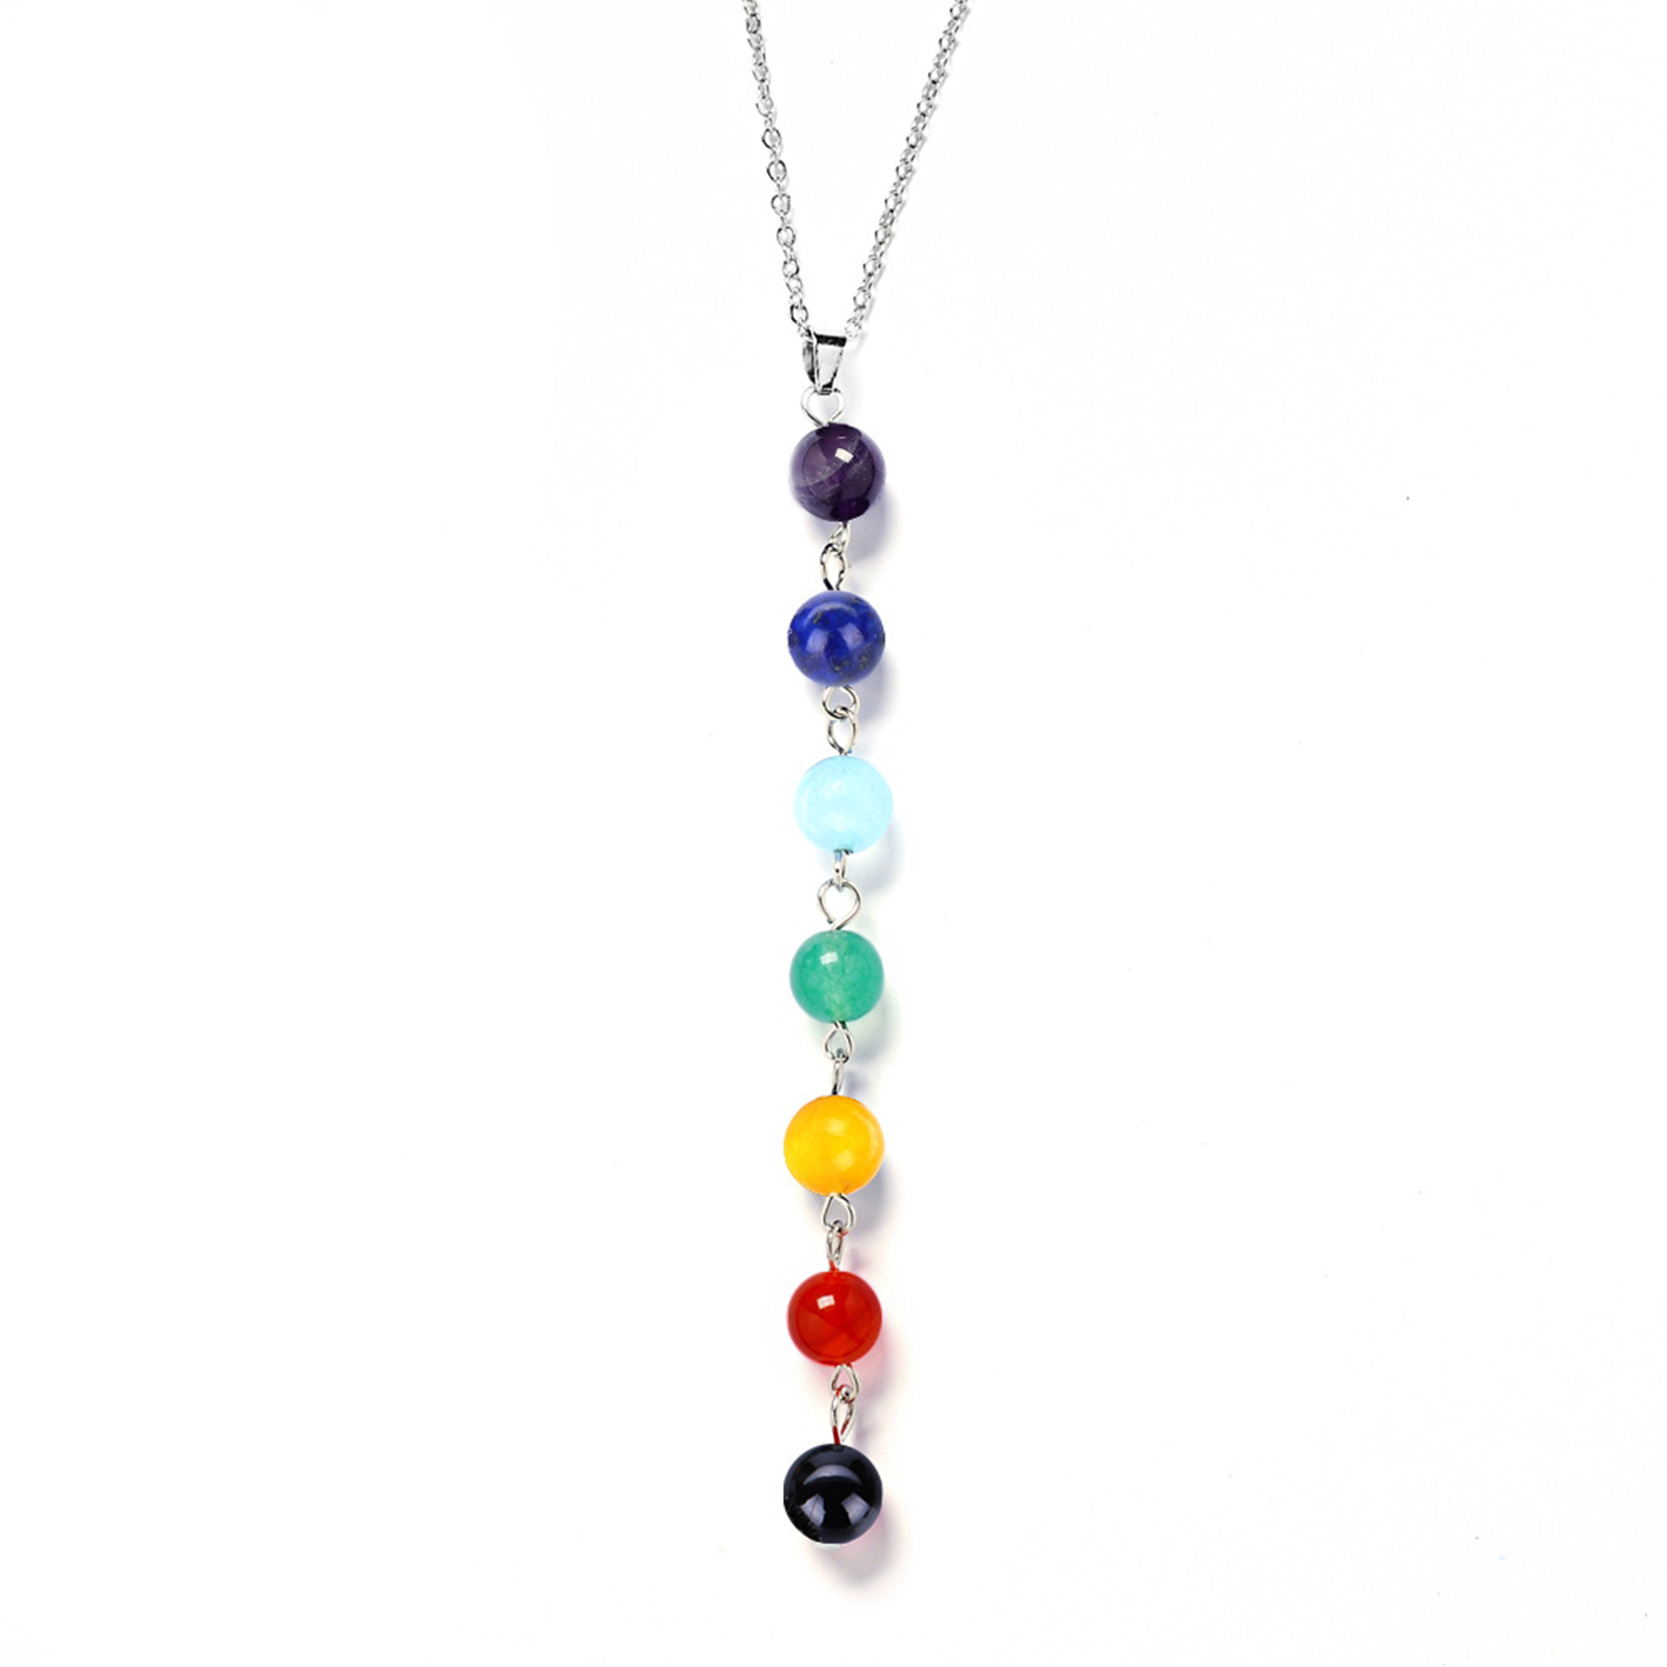 chakra healing flower beads reiki quartz product necklace angel seven pendants stone gemstones pendant natural point and pendent wholesale meditation